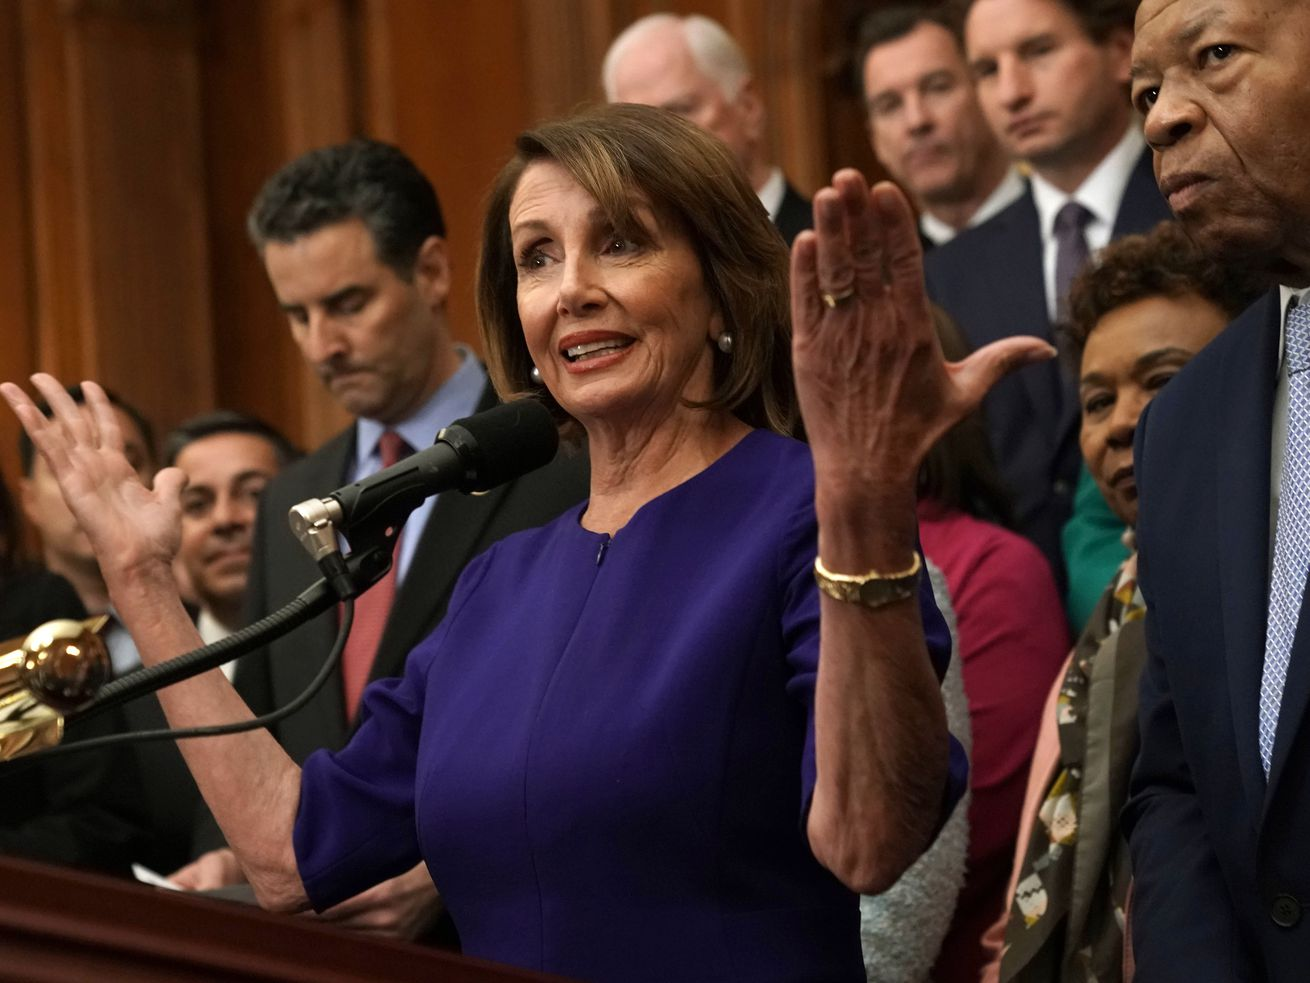 House Speaker Nancy Pelosi speaks at a news conference in Washington, DC, in January 2019.